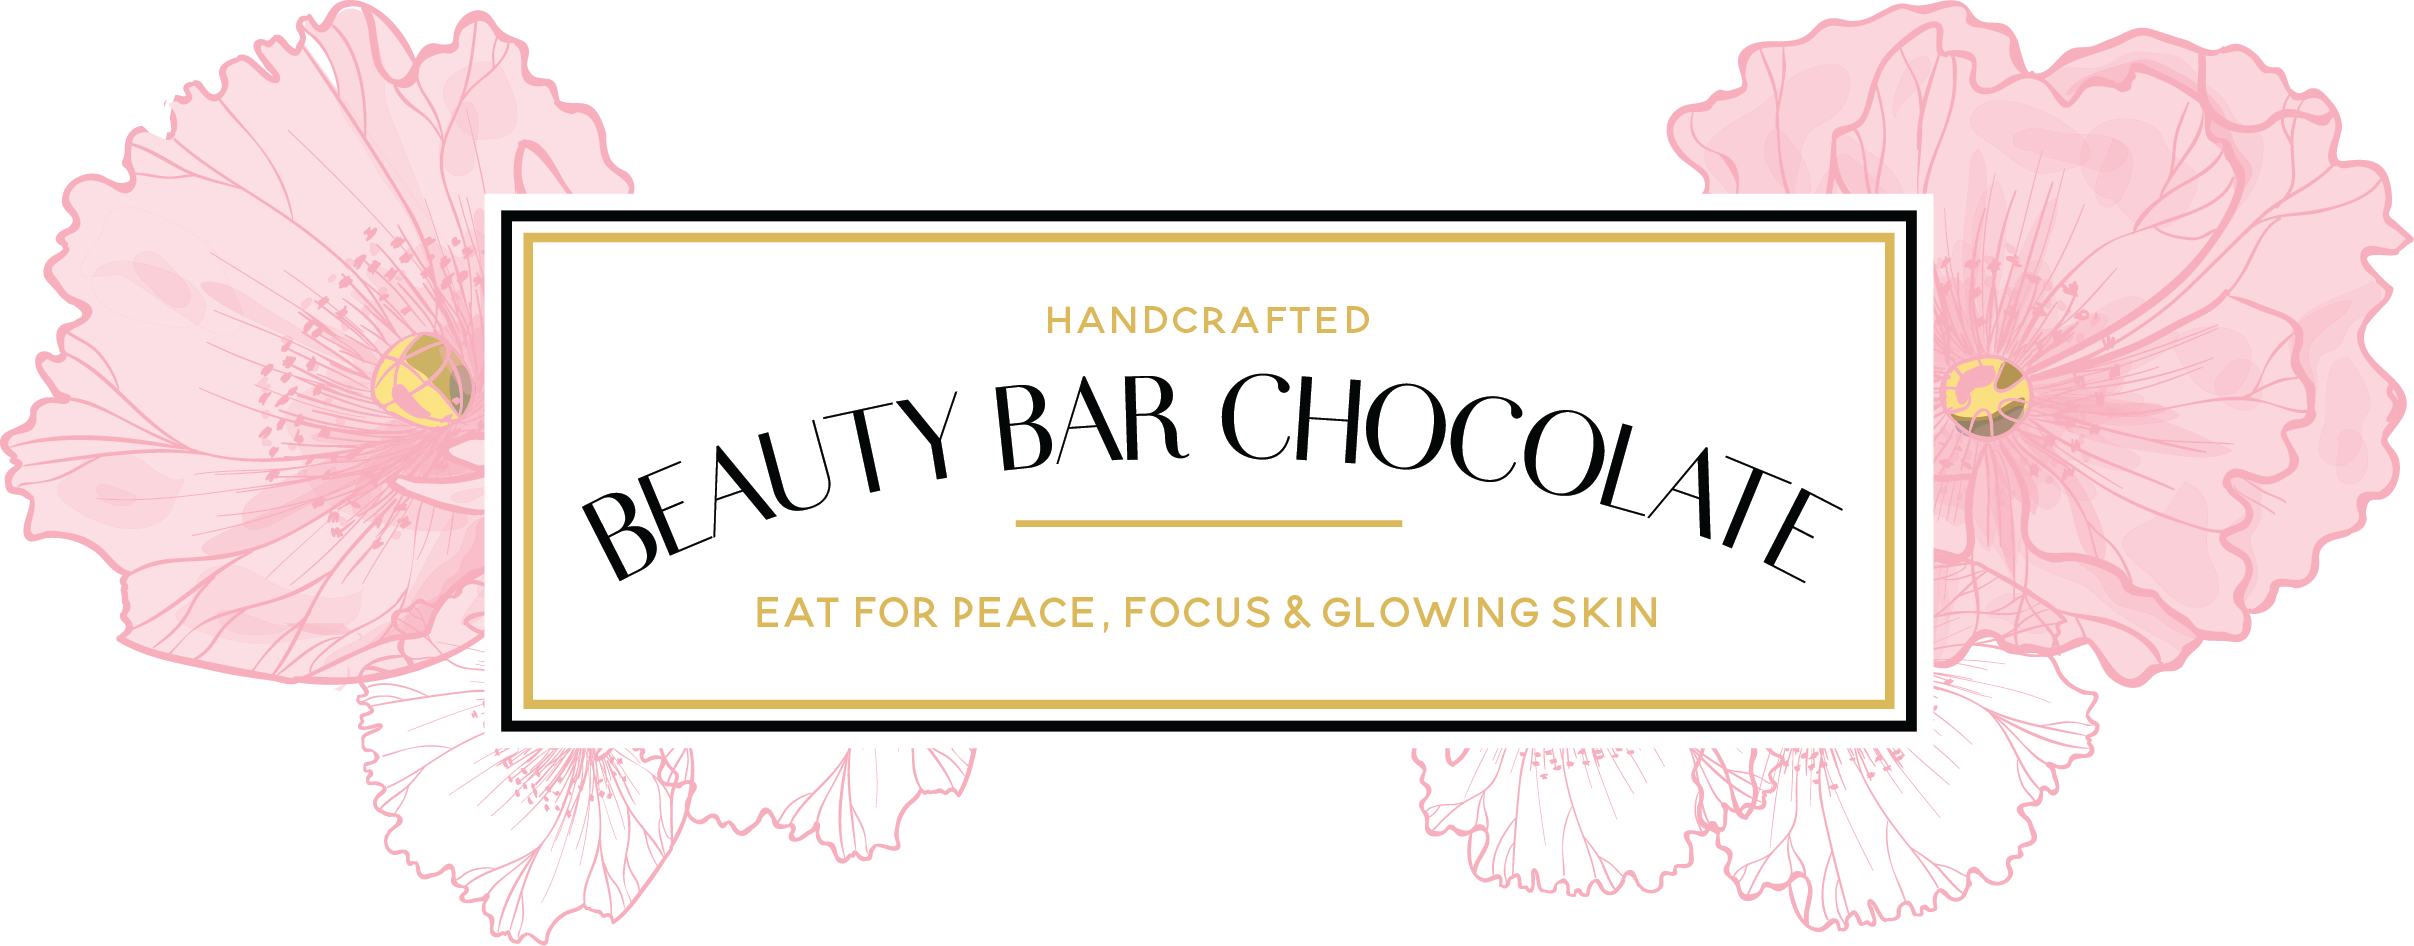 beauty-bar-logo-curved (1).png